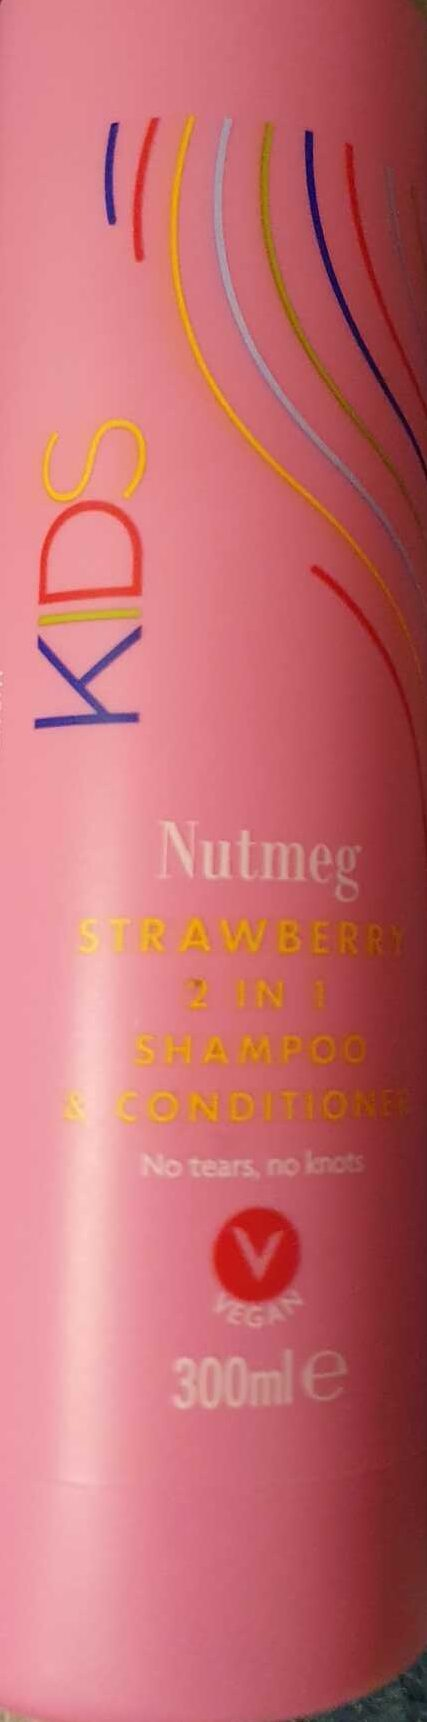 Strawberry 2 in 1 shampoo & conditioner - Product - en